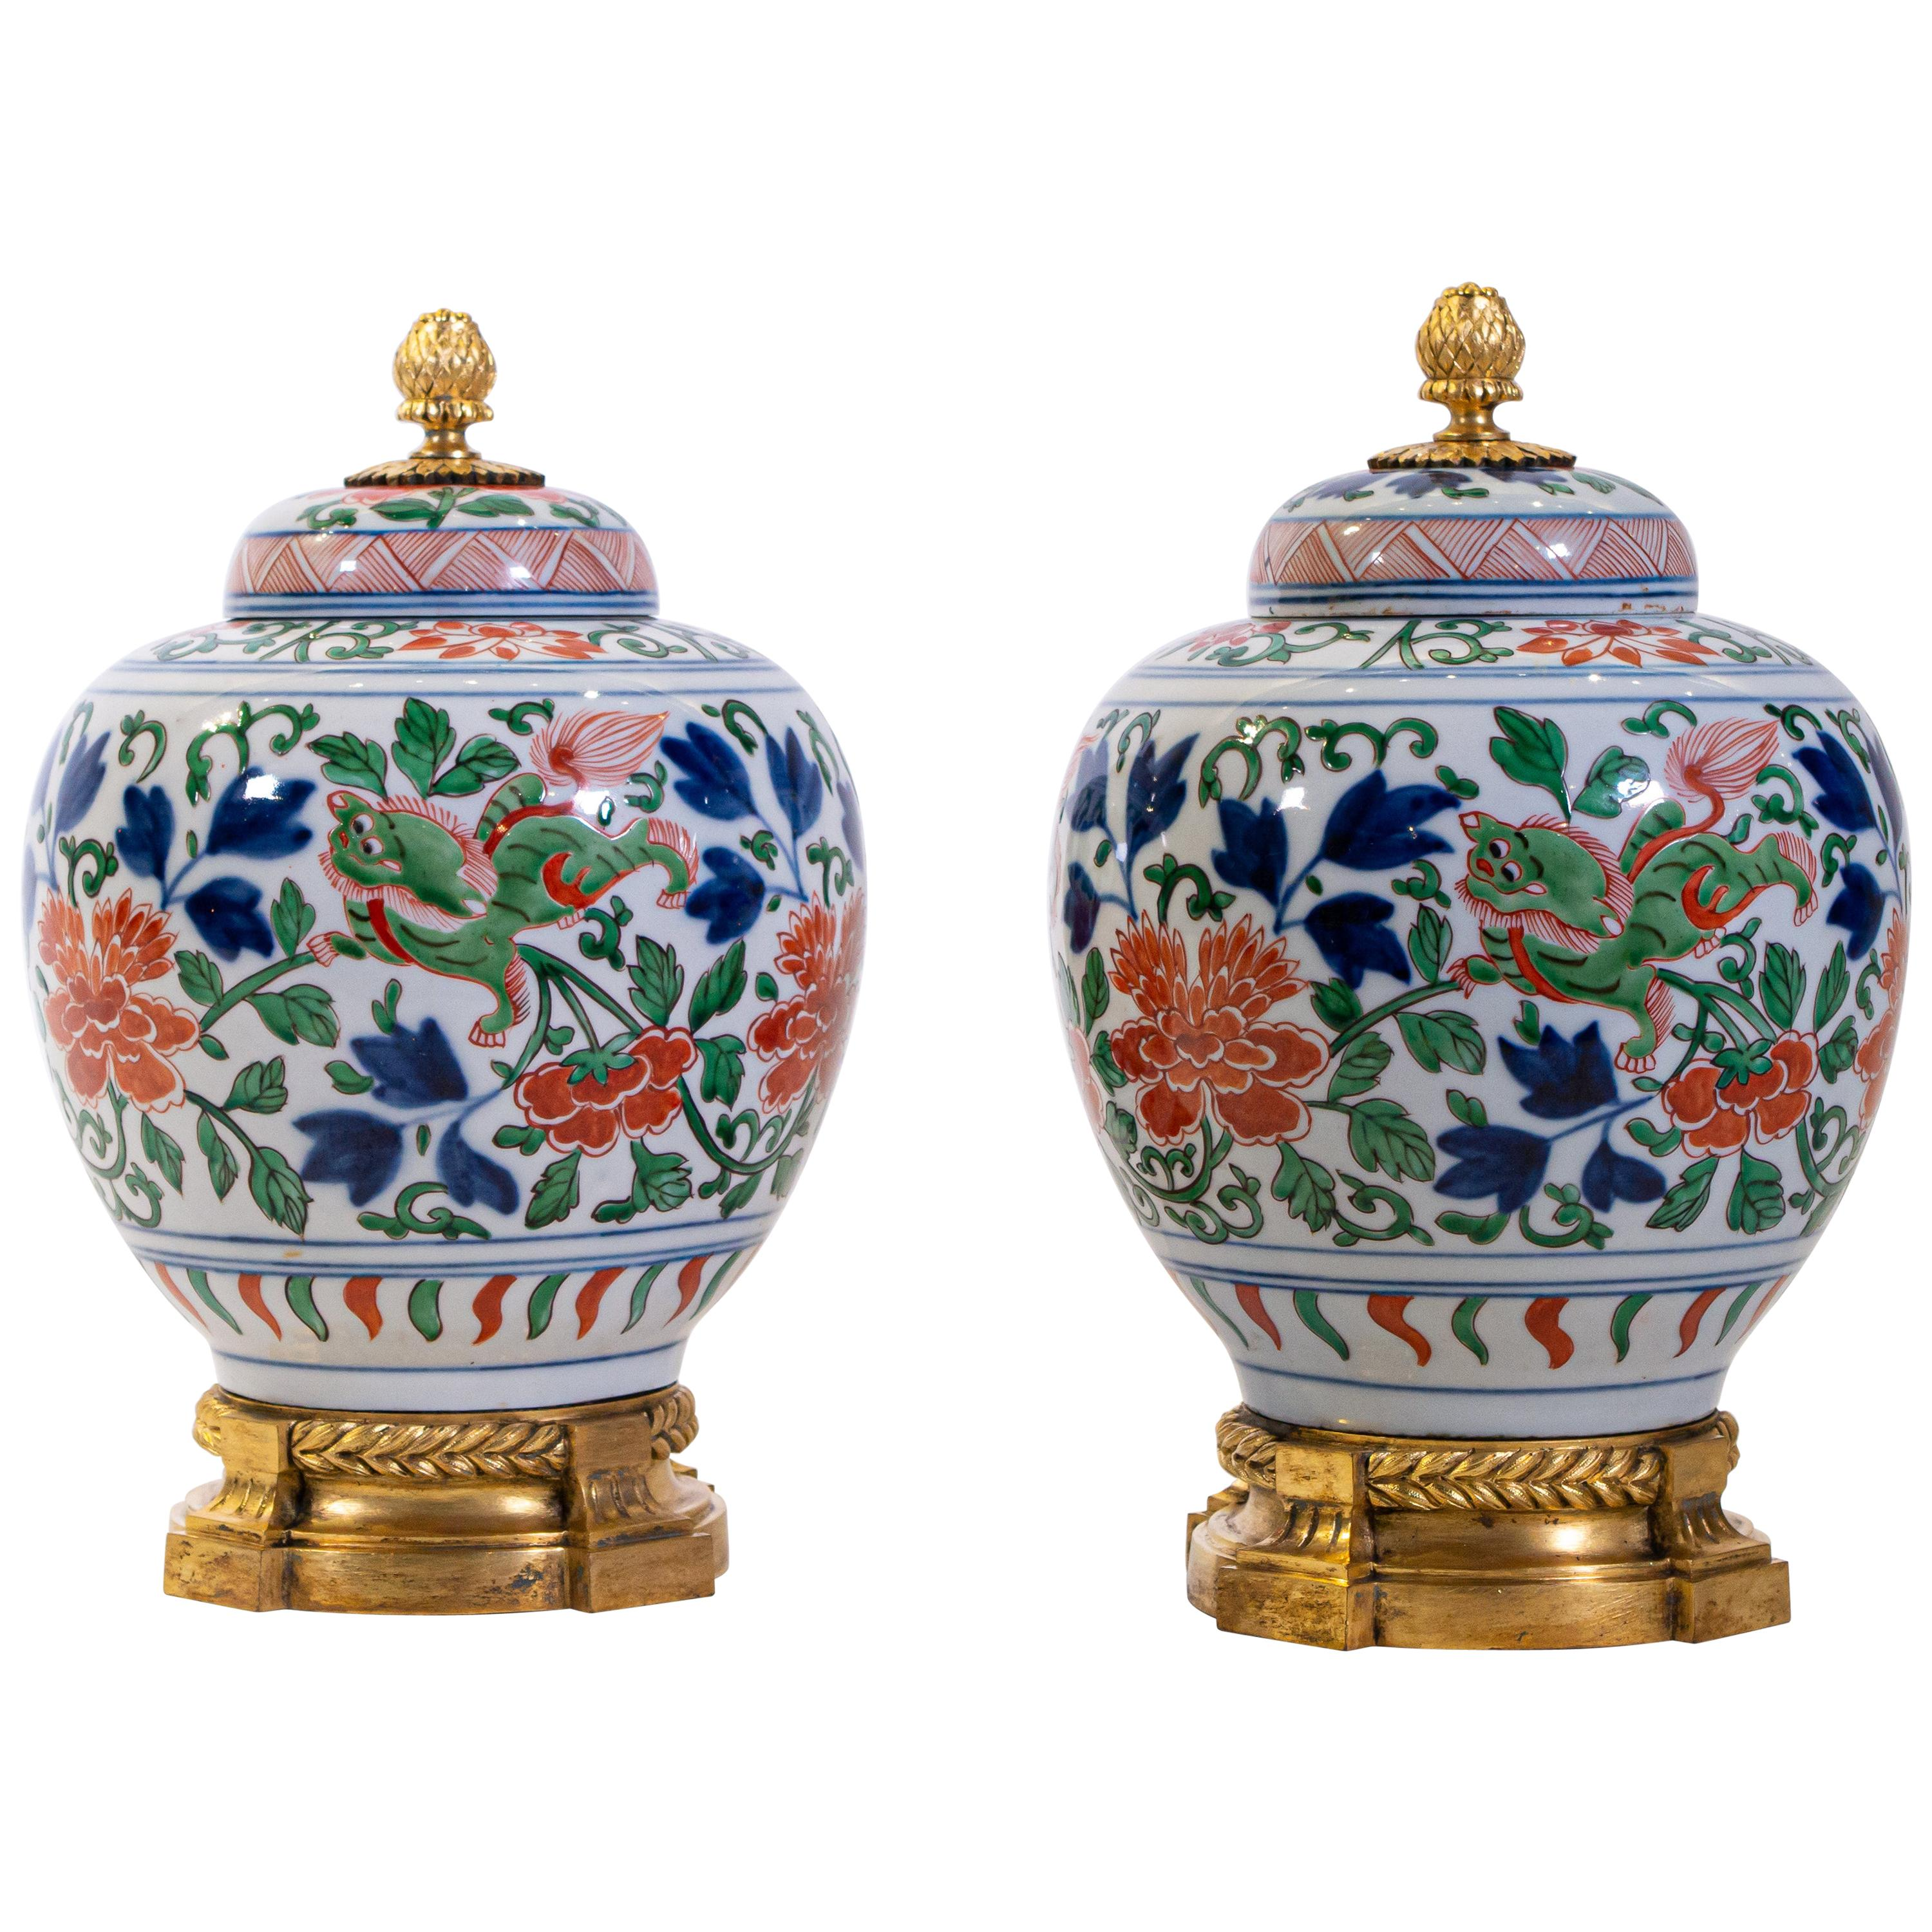 Pair of Louis XVI Dore Bronze Mounted Chinese Porcelain Wucai Covered Urns